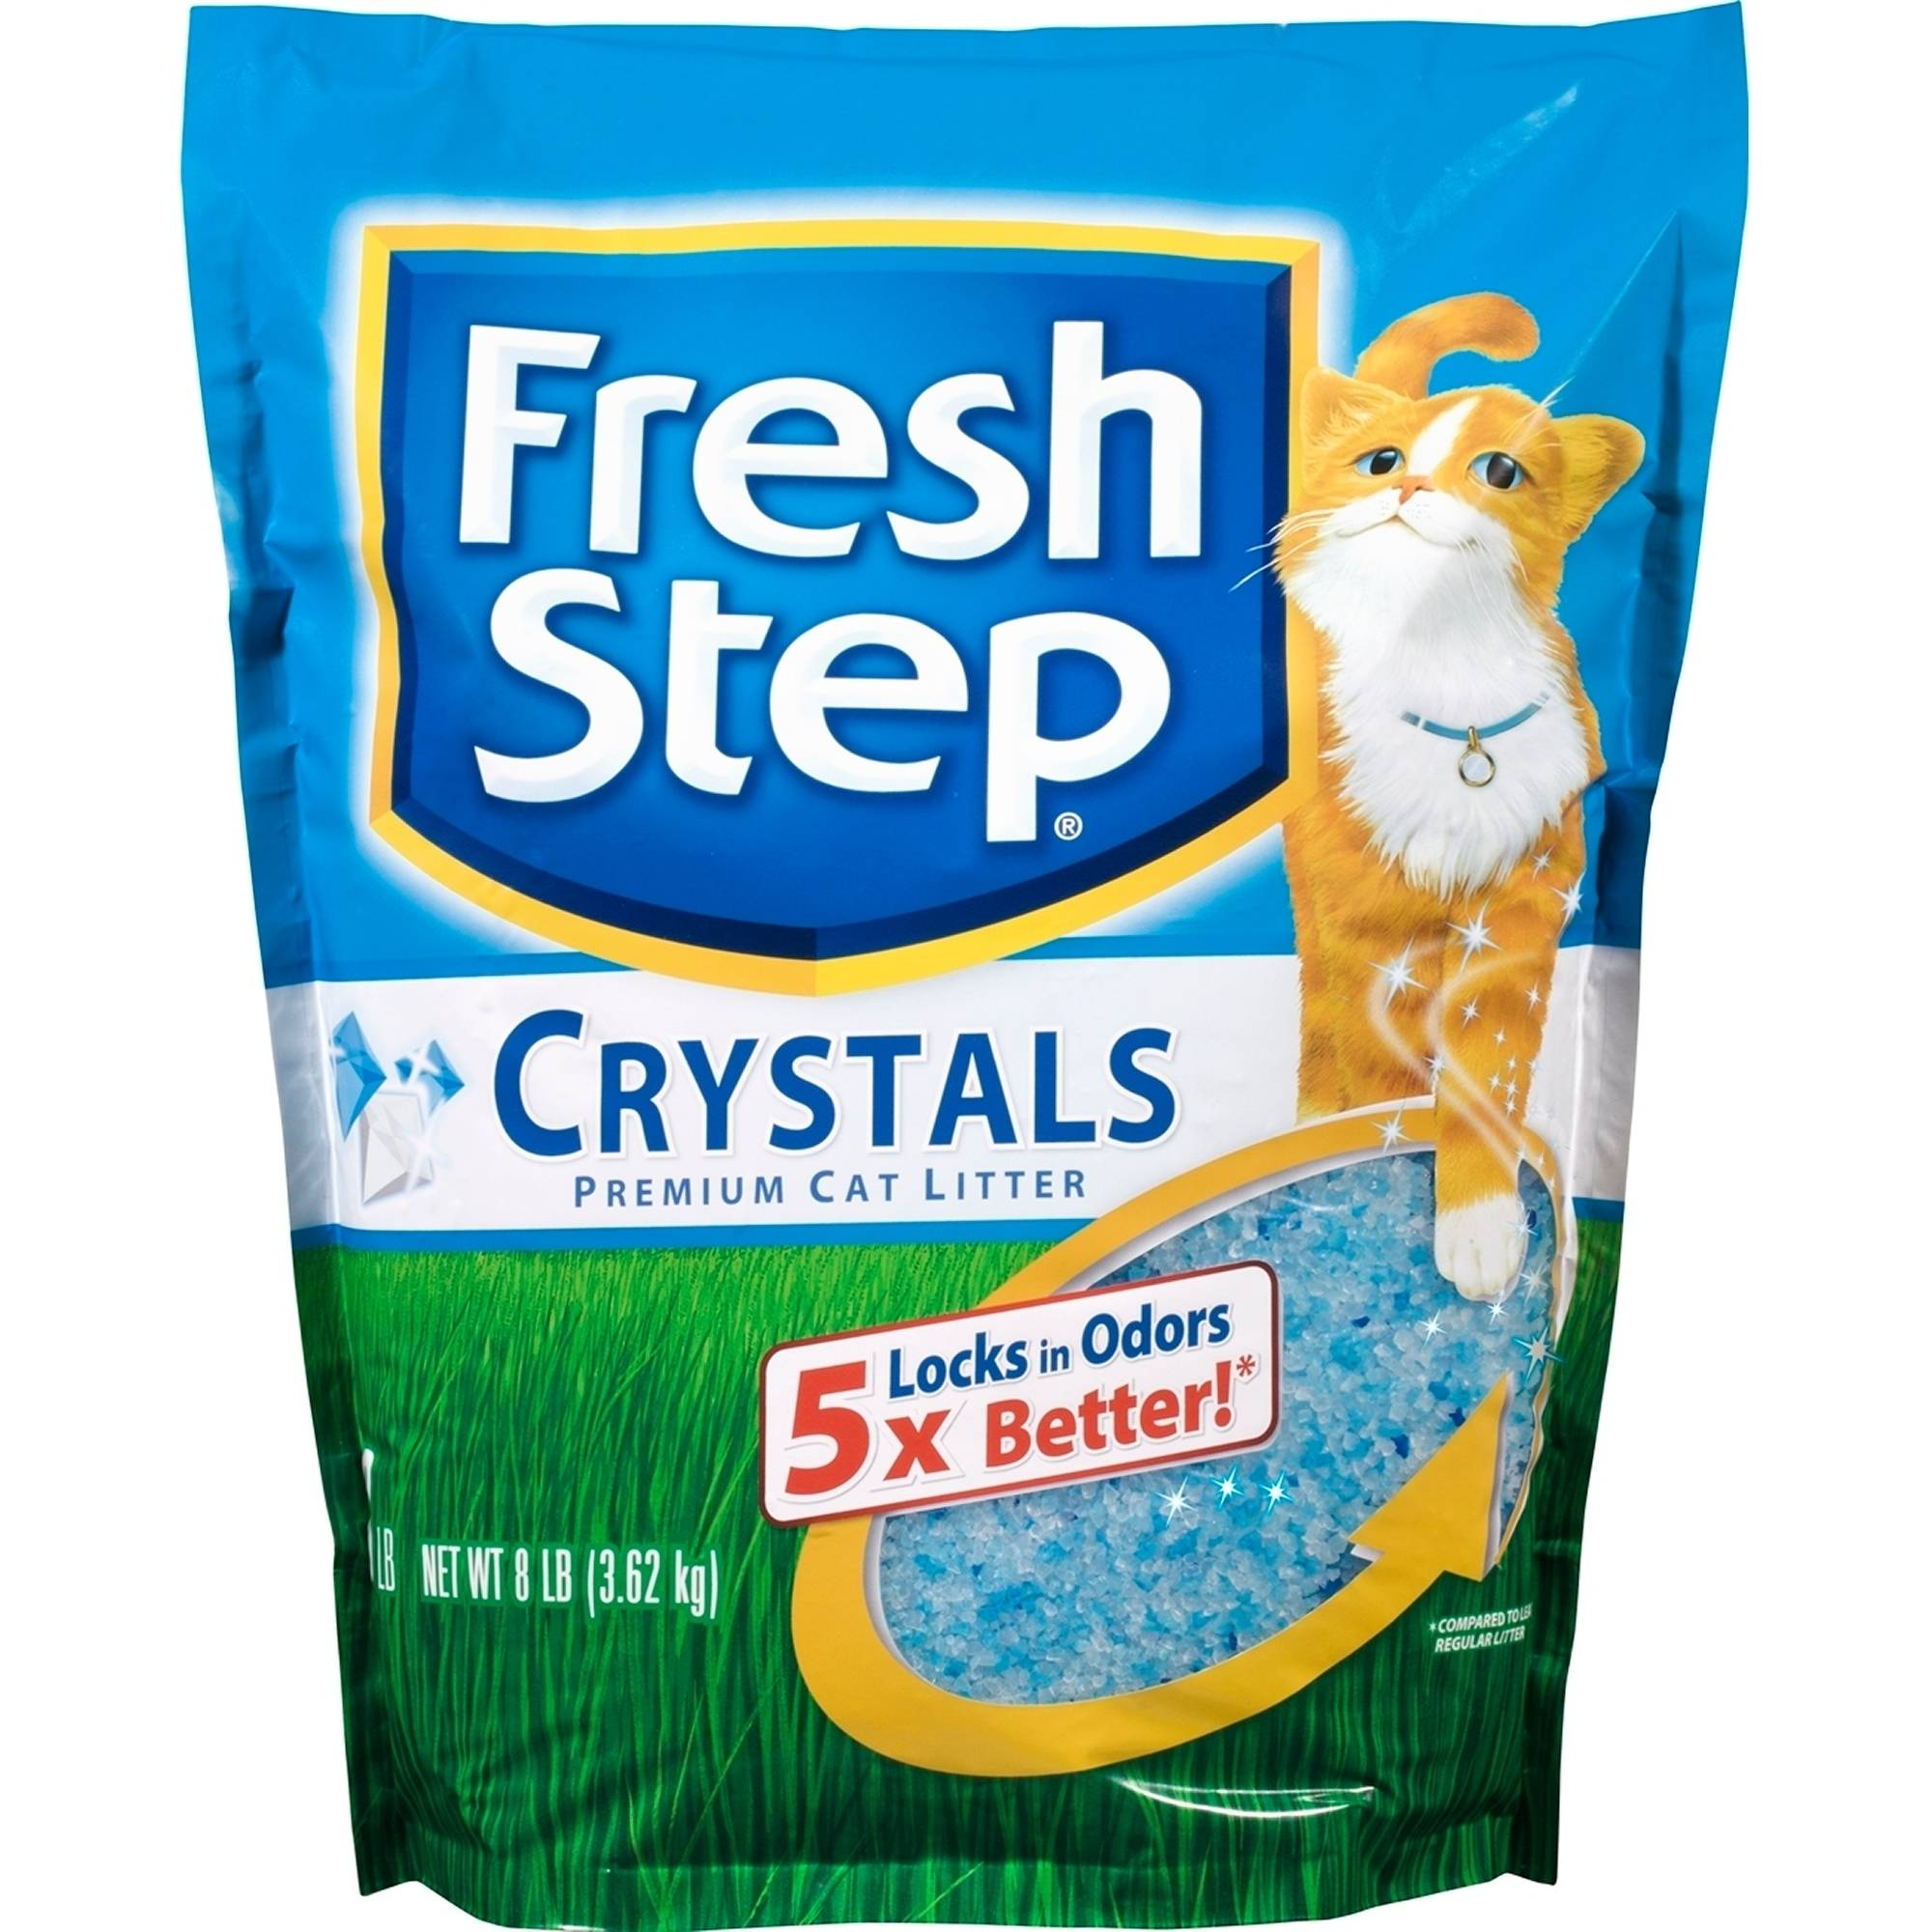 Fresh Step Crystals, Premium Cat Litter, 8 lb Bag